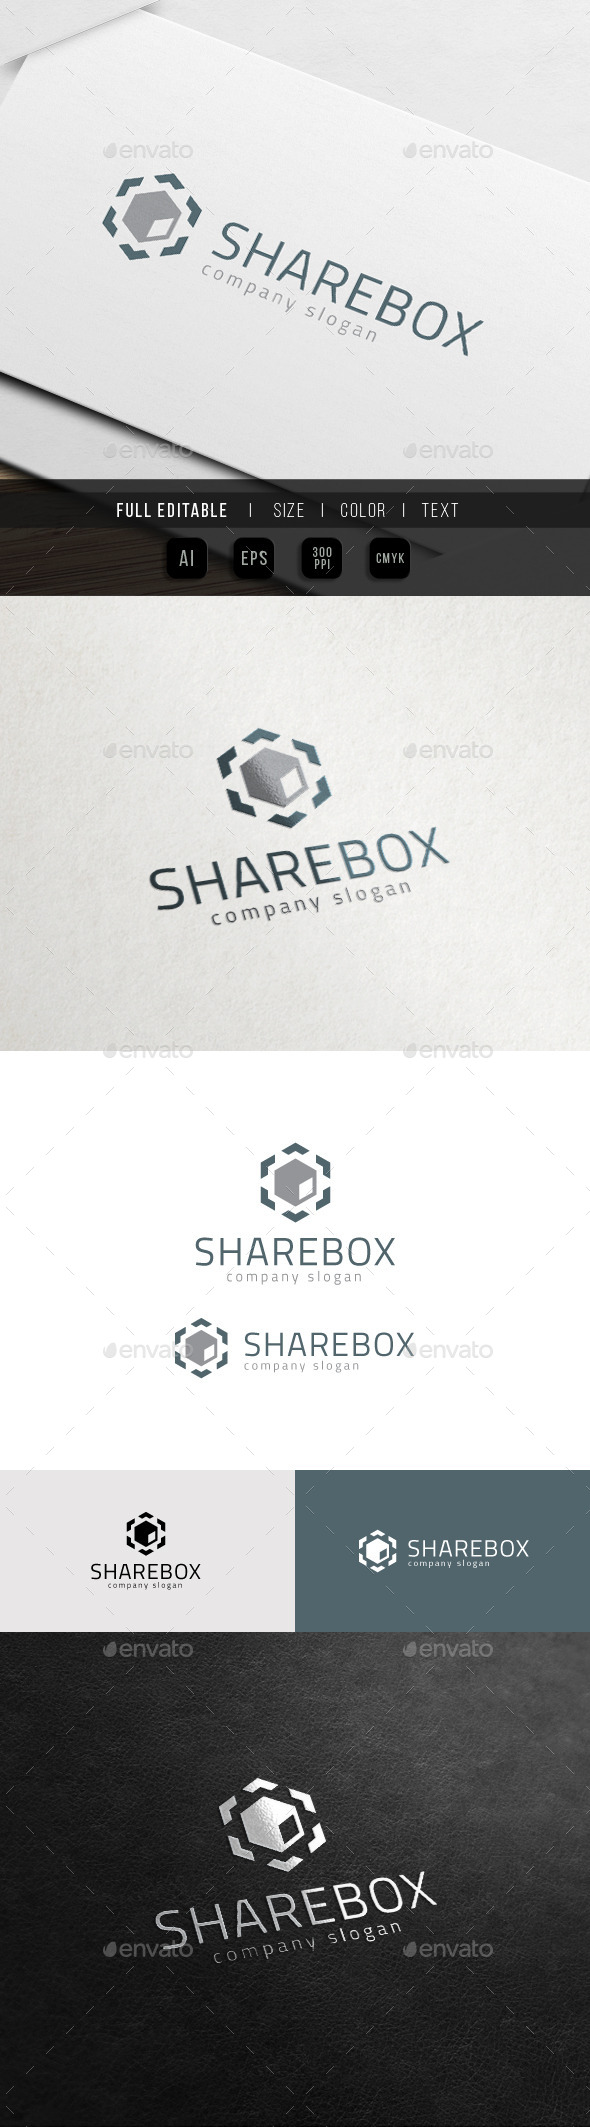 GraphicRiver Share Box Cloud Hosting Logo 11423626